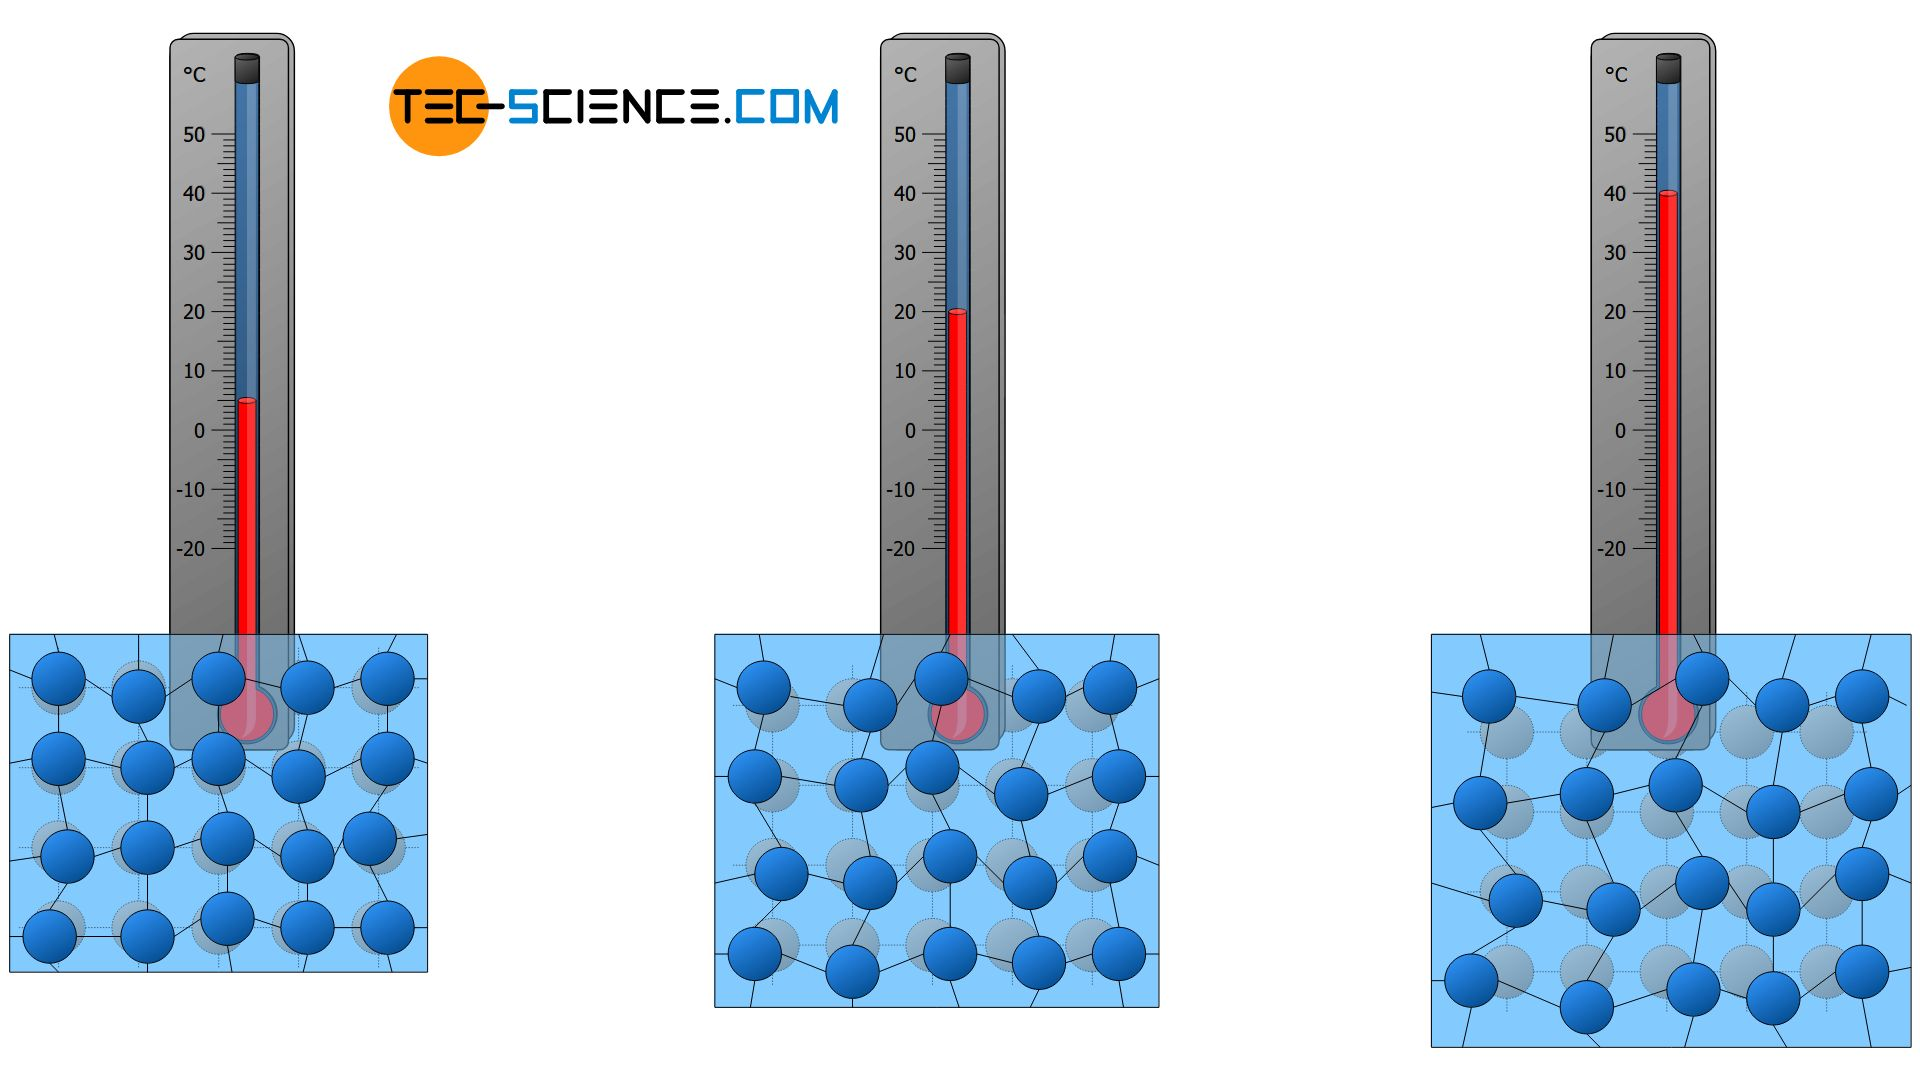 Influence of temperature on particle motion and thermal expansion